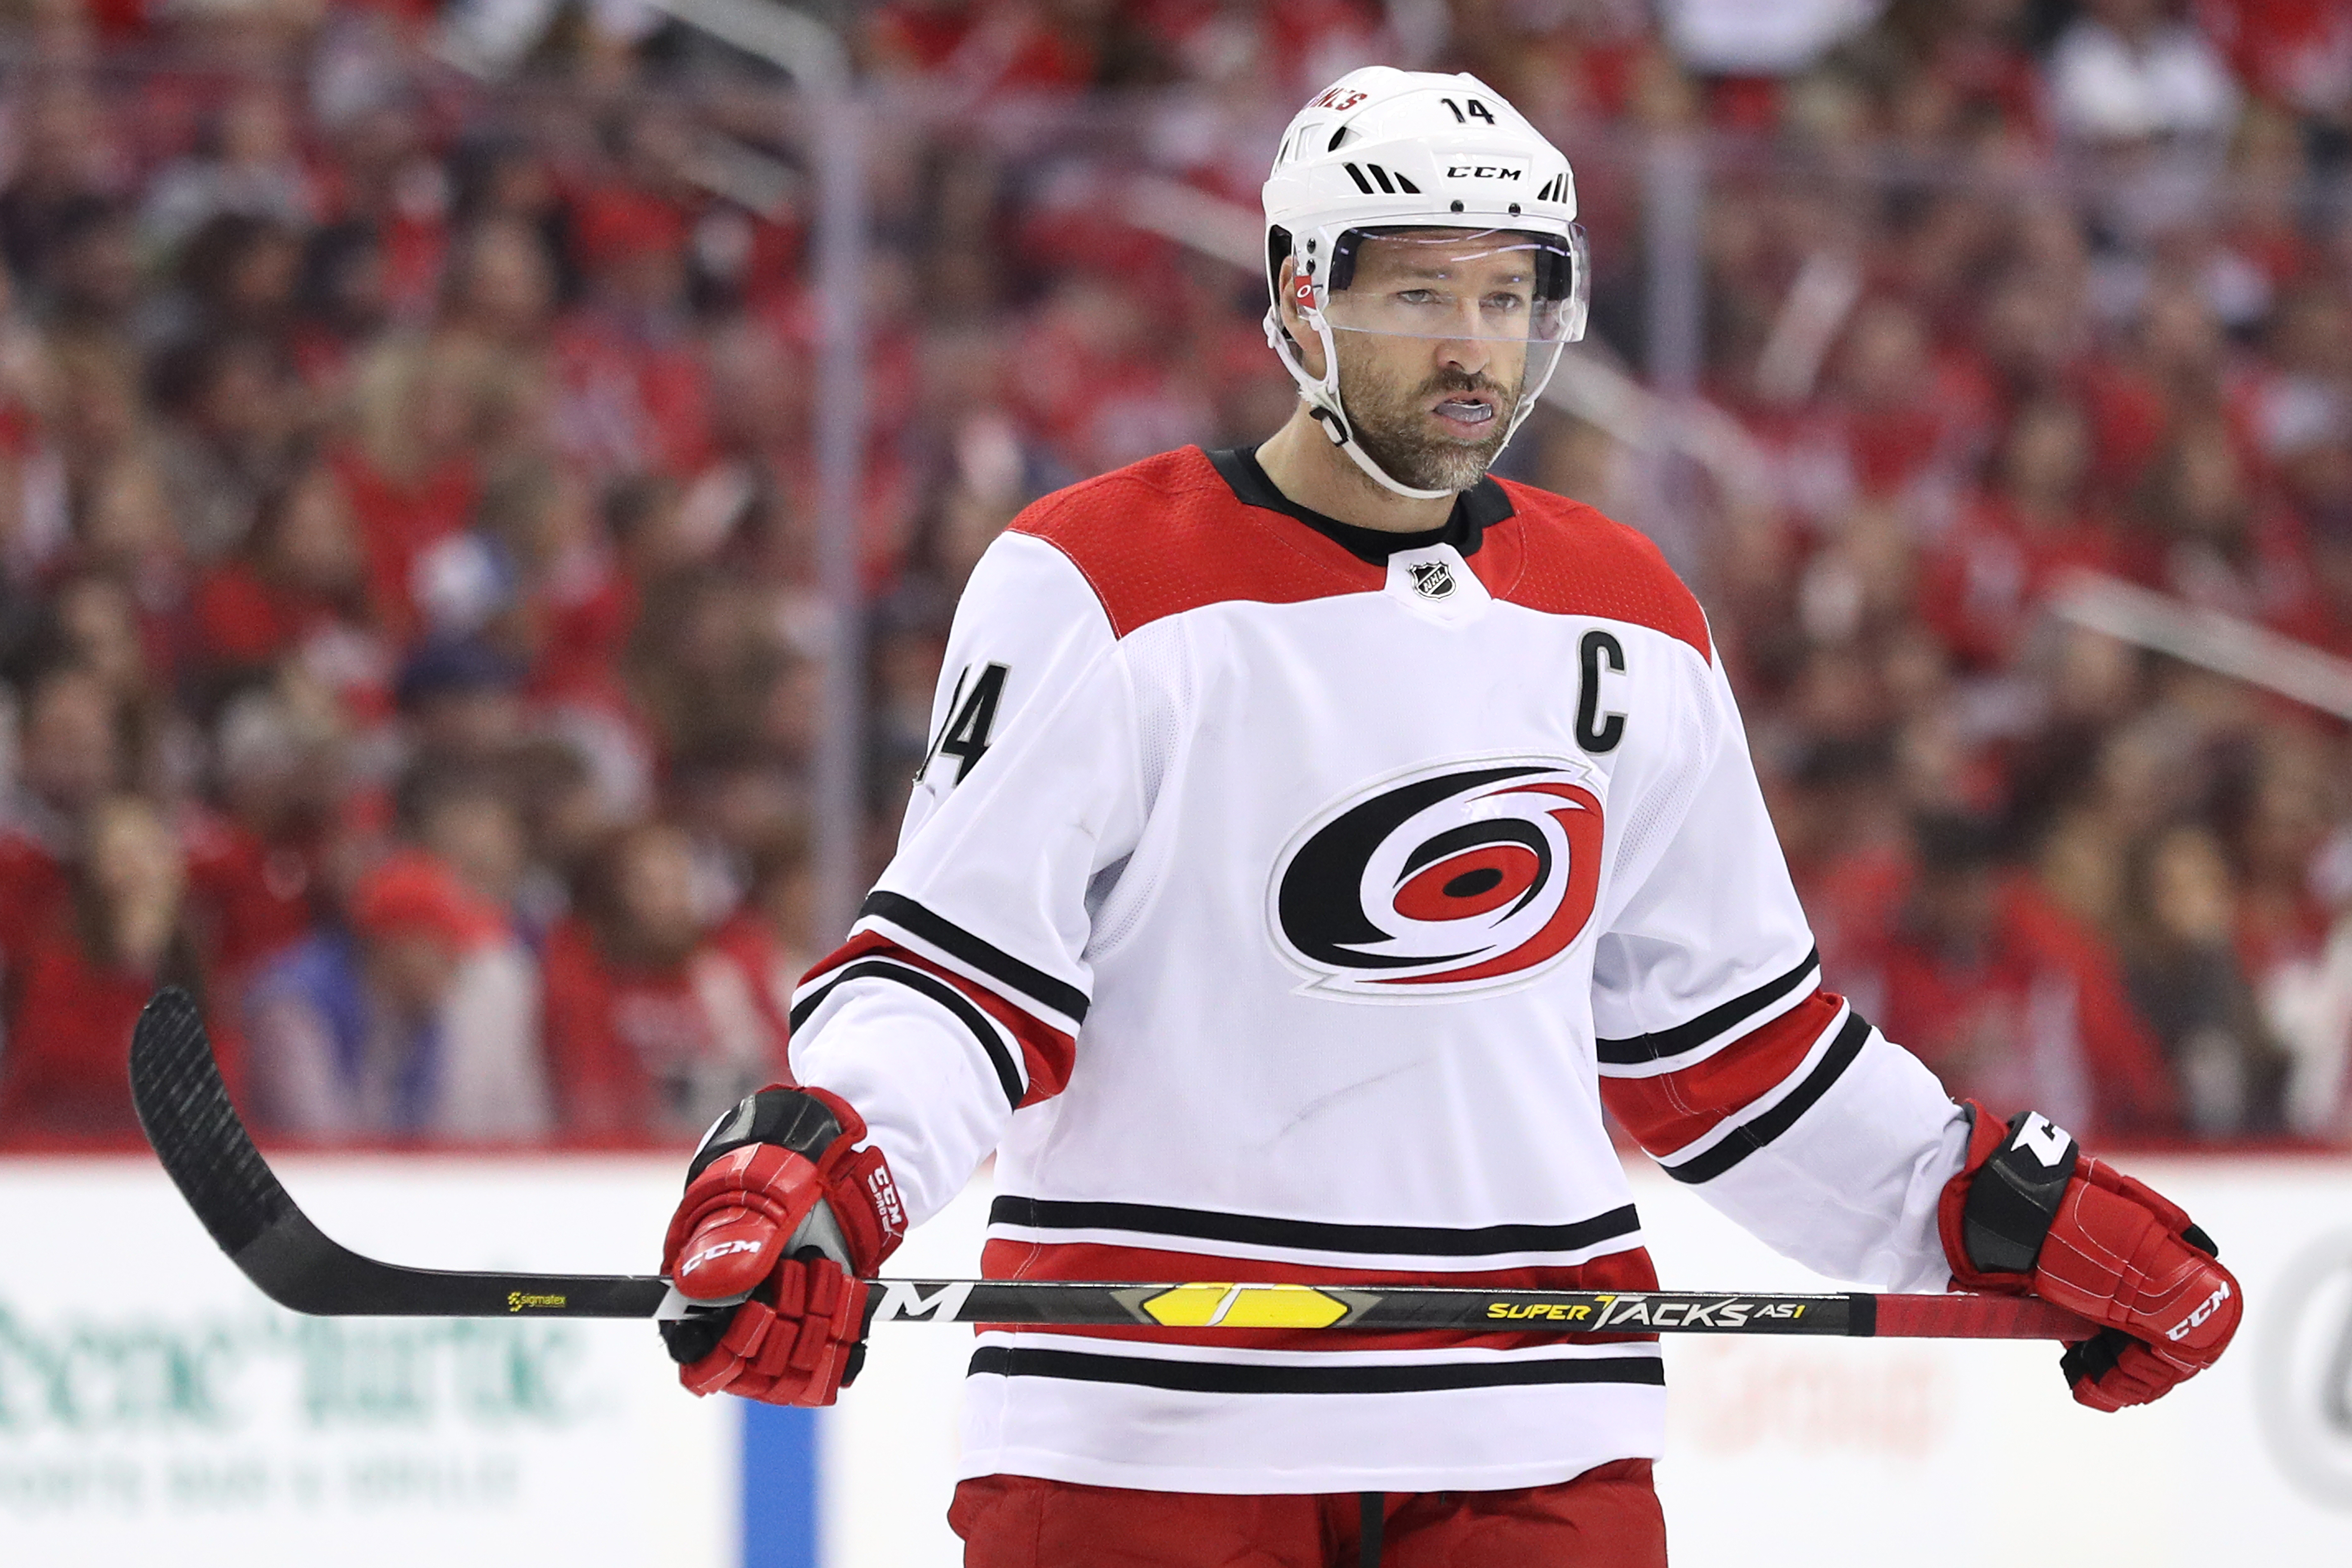 WASHINGTON, DC - APRIL 20: Justin Williams #14 of the Carolina Hurricanes looks on against the Washington Capitals in the first period in Game Five of the Eastern Conference First Round during the 2019 NHL Stanley Cup Playoffs at Capital One Arena on Apri